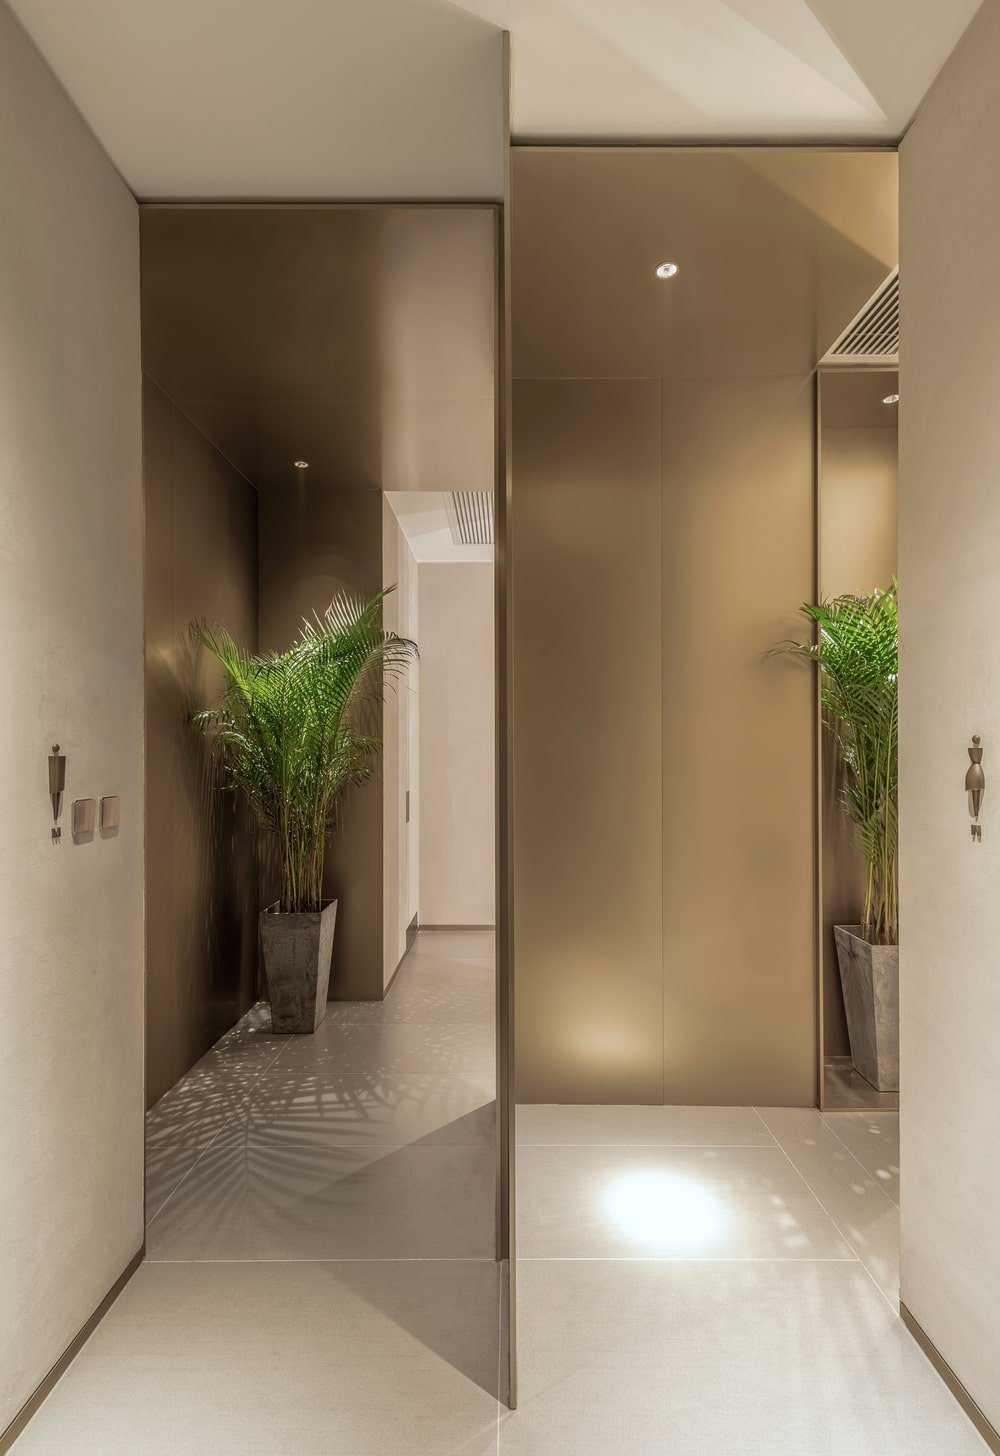 This is a close look at the entryways for the male and female comfort rooms adorned with potted plants.